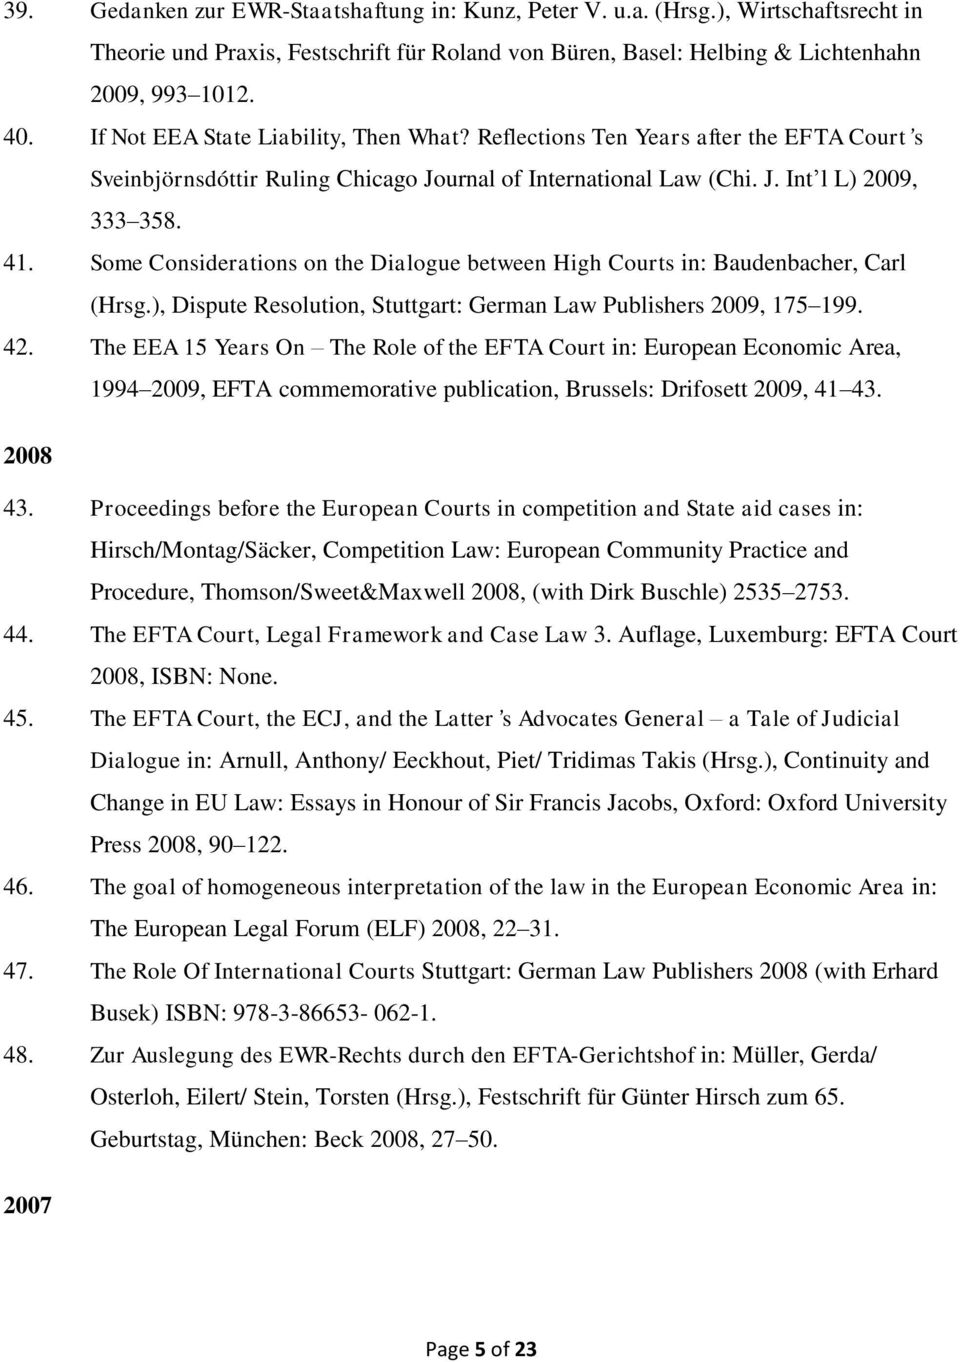 essays in honour of sir francis jacobs Paul craig, ma 1973, bcl 1974,  continuity and change in eu law, essays in honour of sir francis jacobs' (2009) pl 417  essays in honour of sir william wade.